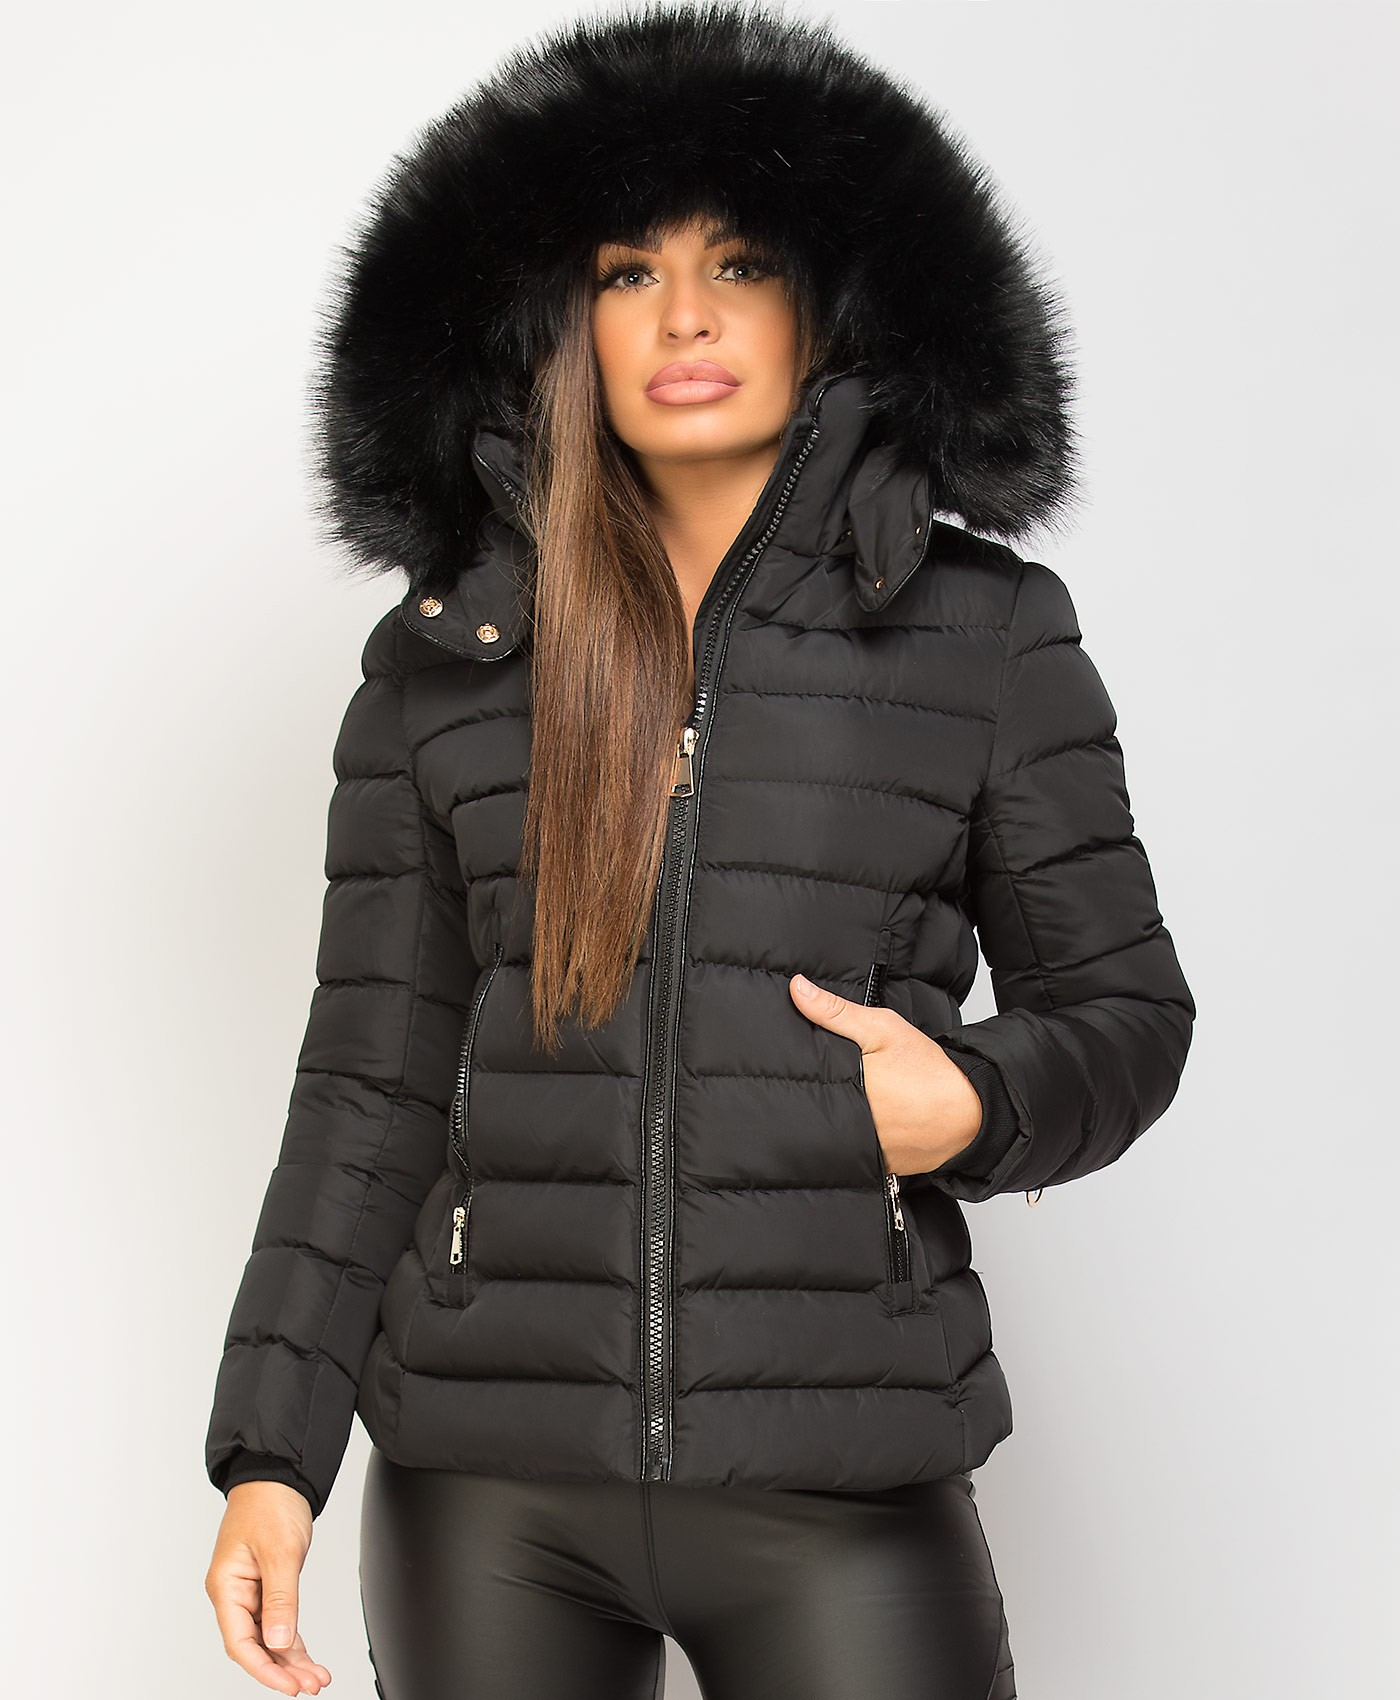 Black-Y-912-Quilted-Padded-Contrast-Fur-Hooded-Puffer-Jacket-1